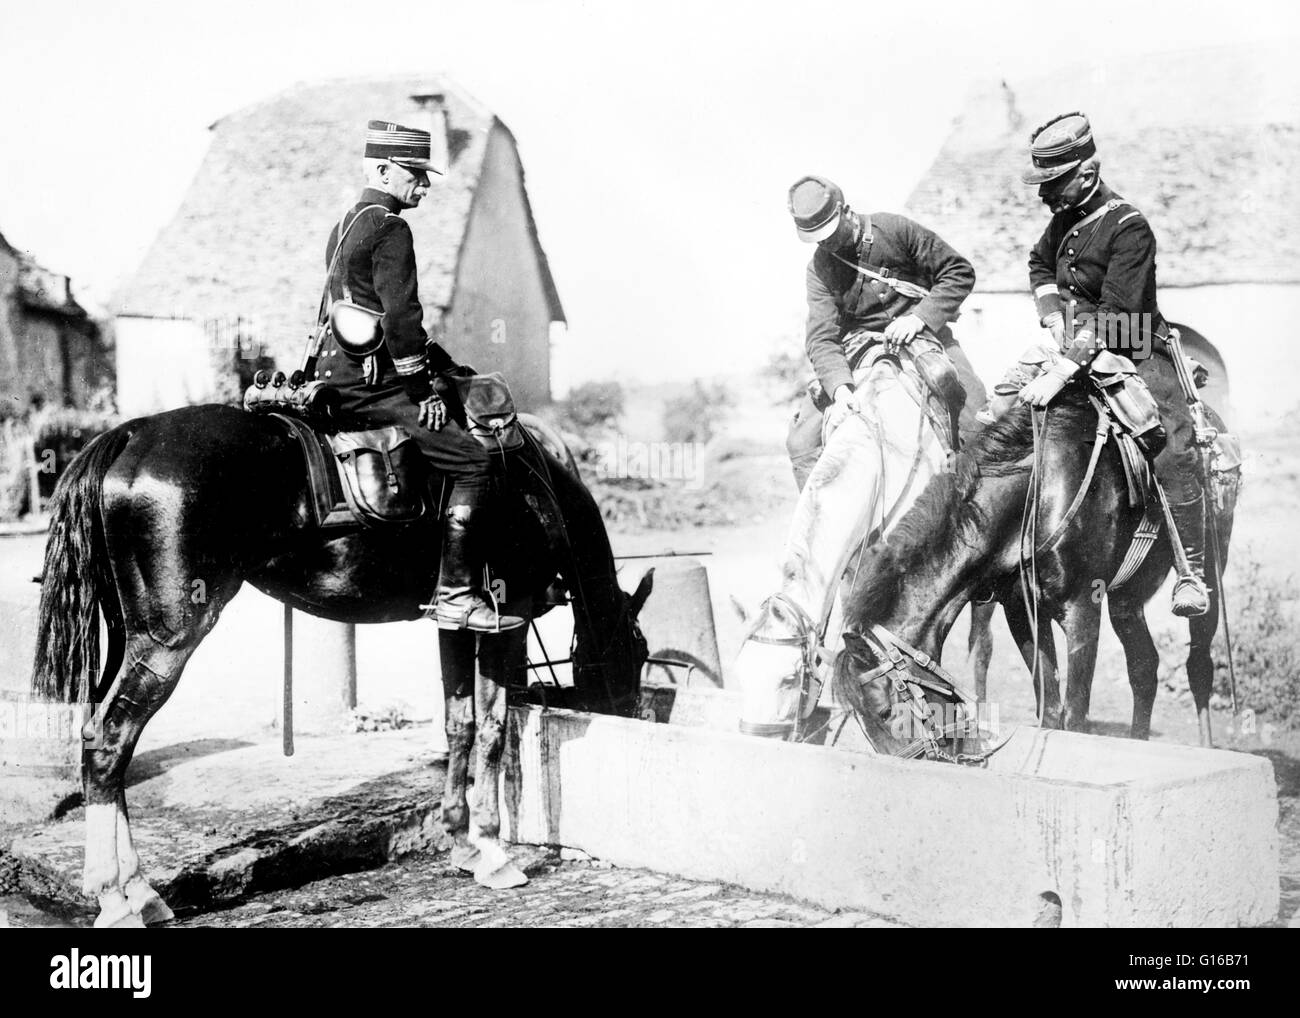 French officers and horses during World War I. The use of horses in World War I marked a transitional period in - Stock Image